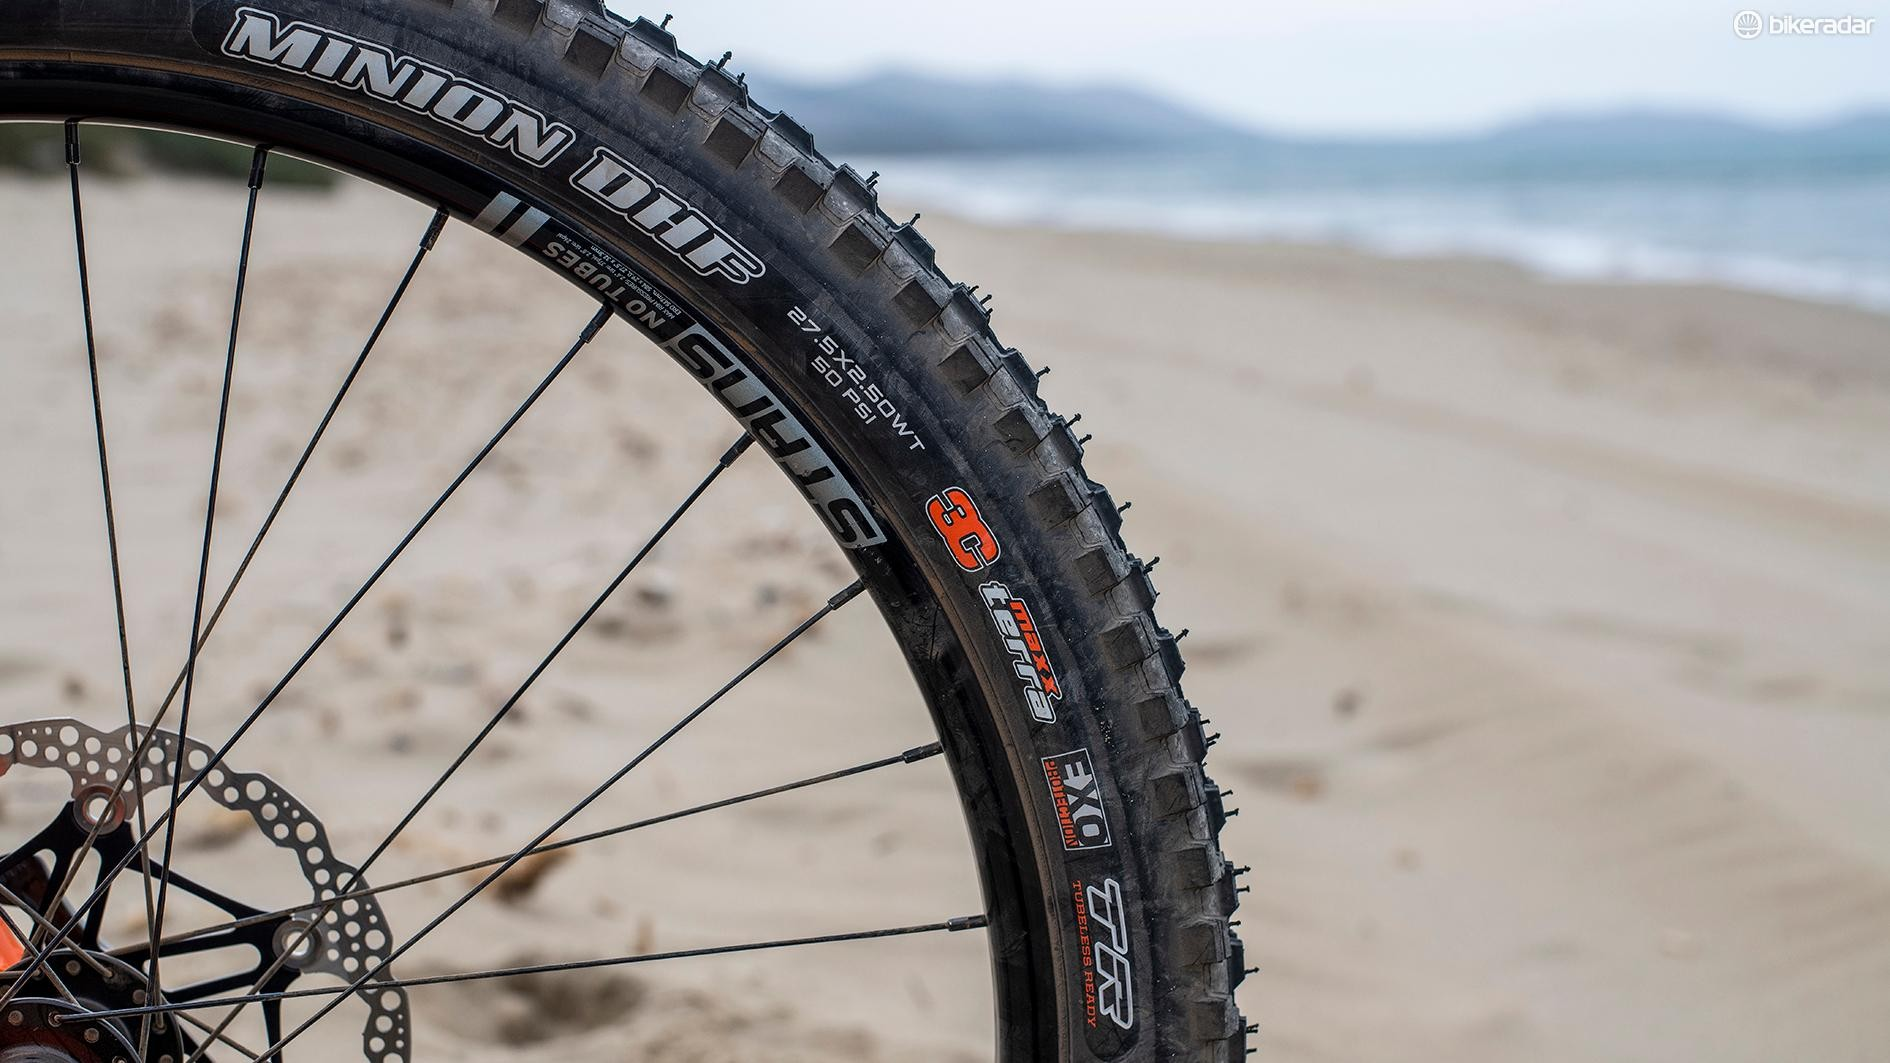 Maxxis tyres are always a safe bet